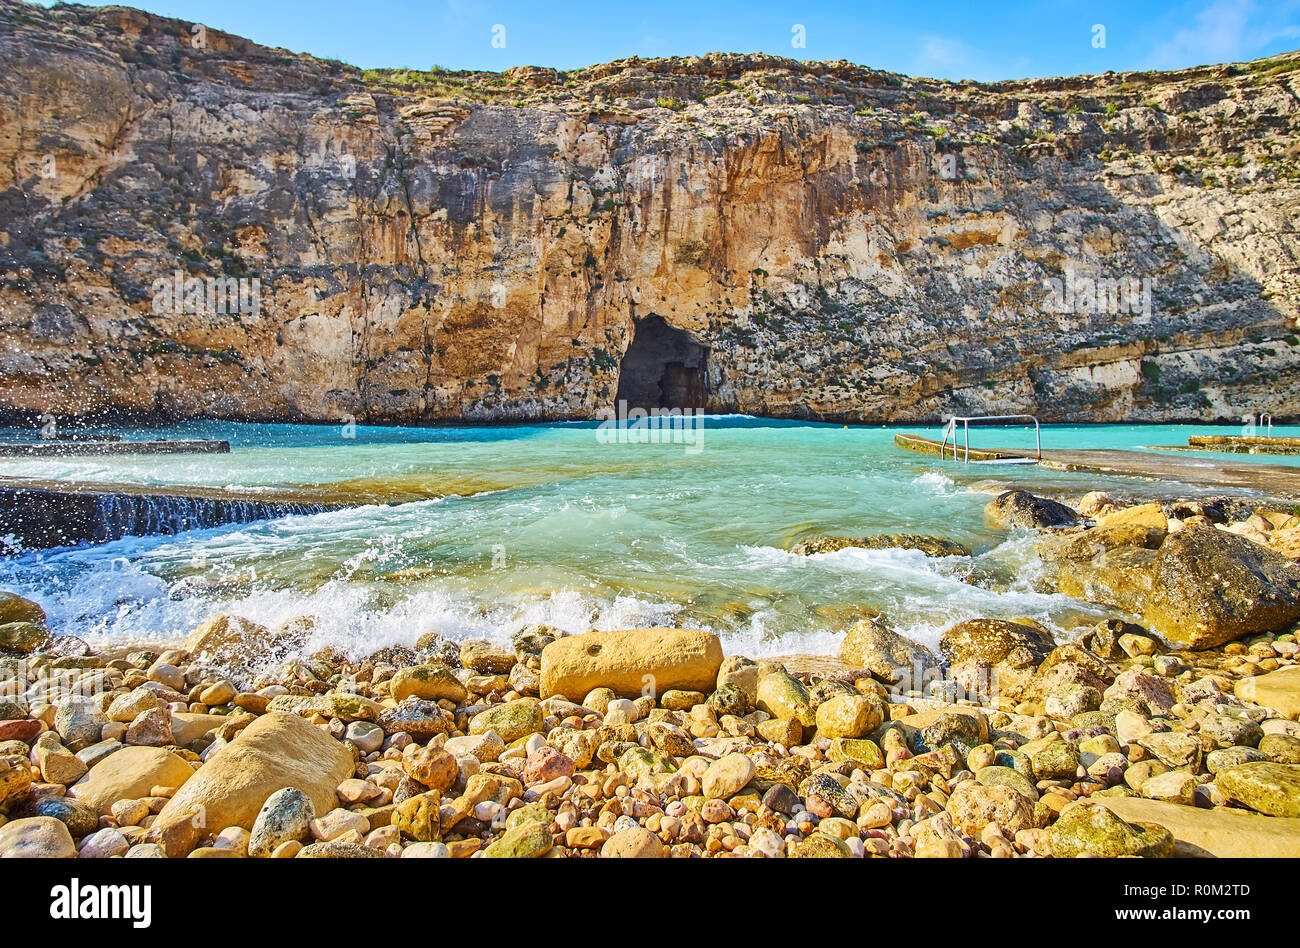 The Dwejra Inland Sea with tall cliffs, rocky shores, tiny beach and Blu Hole pass in rock, connecting this small lagoon with main sea waters, San Law - Stock Image